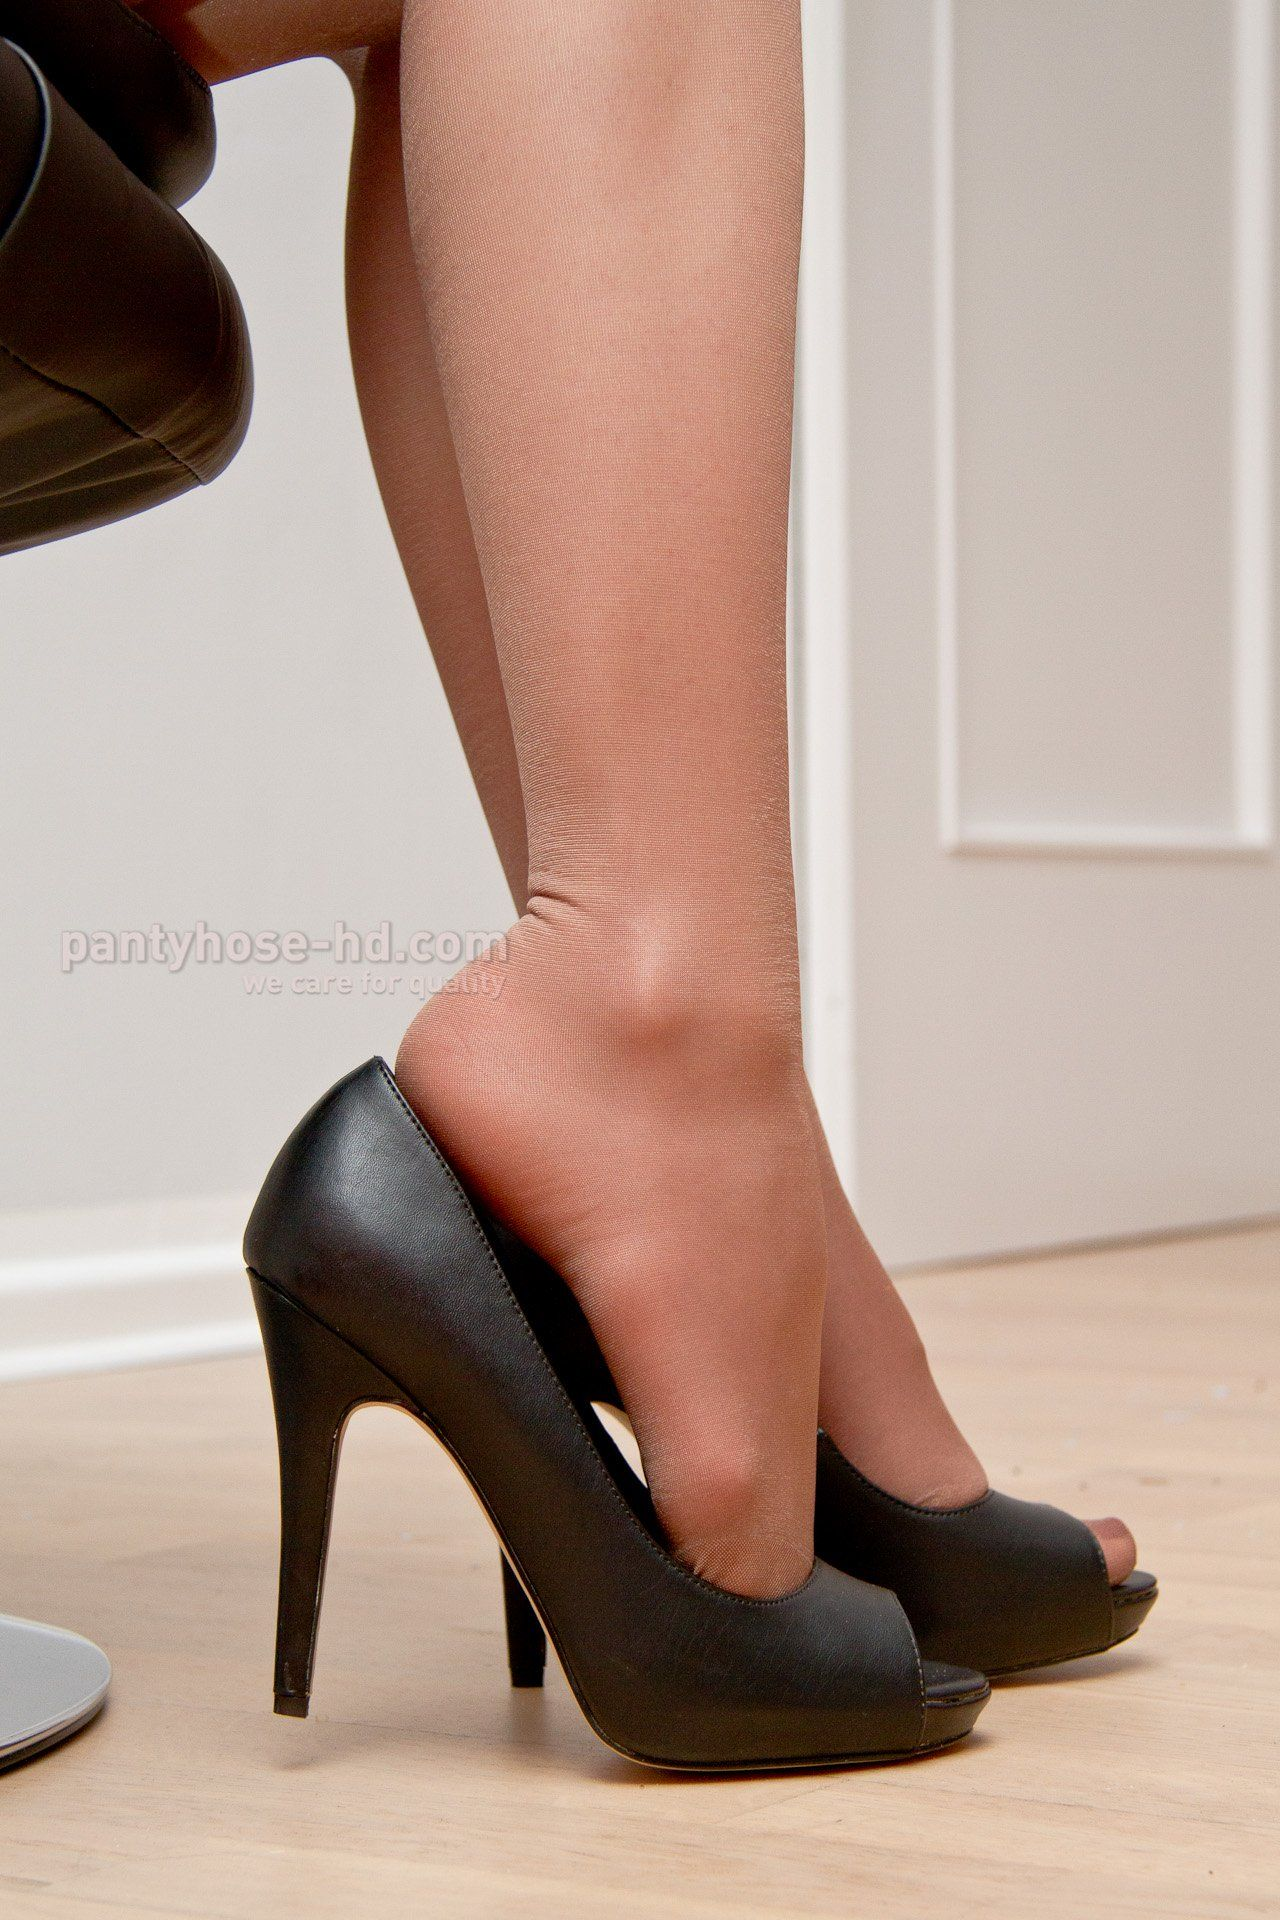 Foot rub after heels and pantyhose photo 623